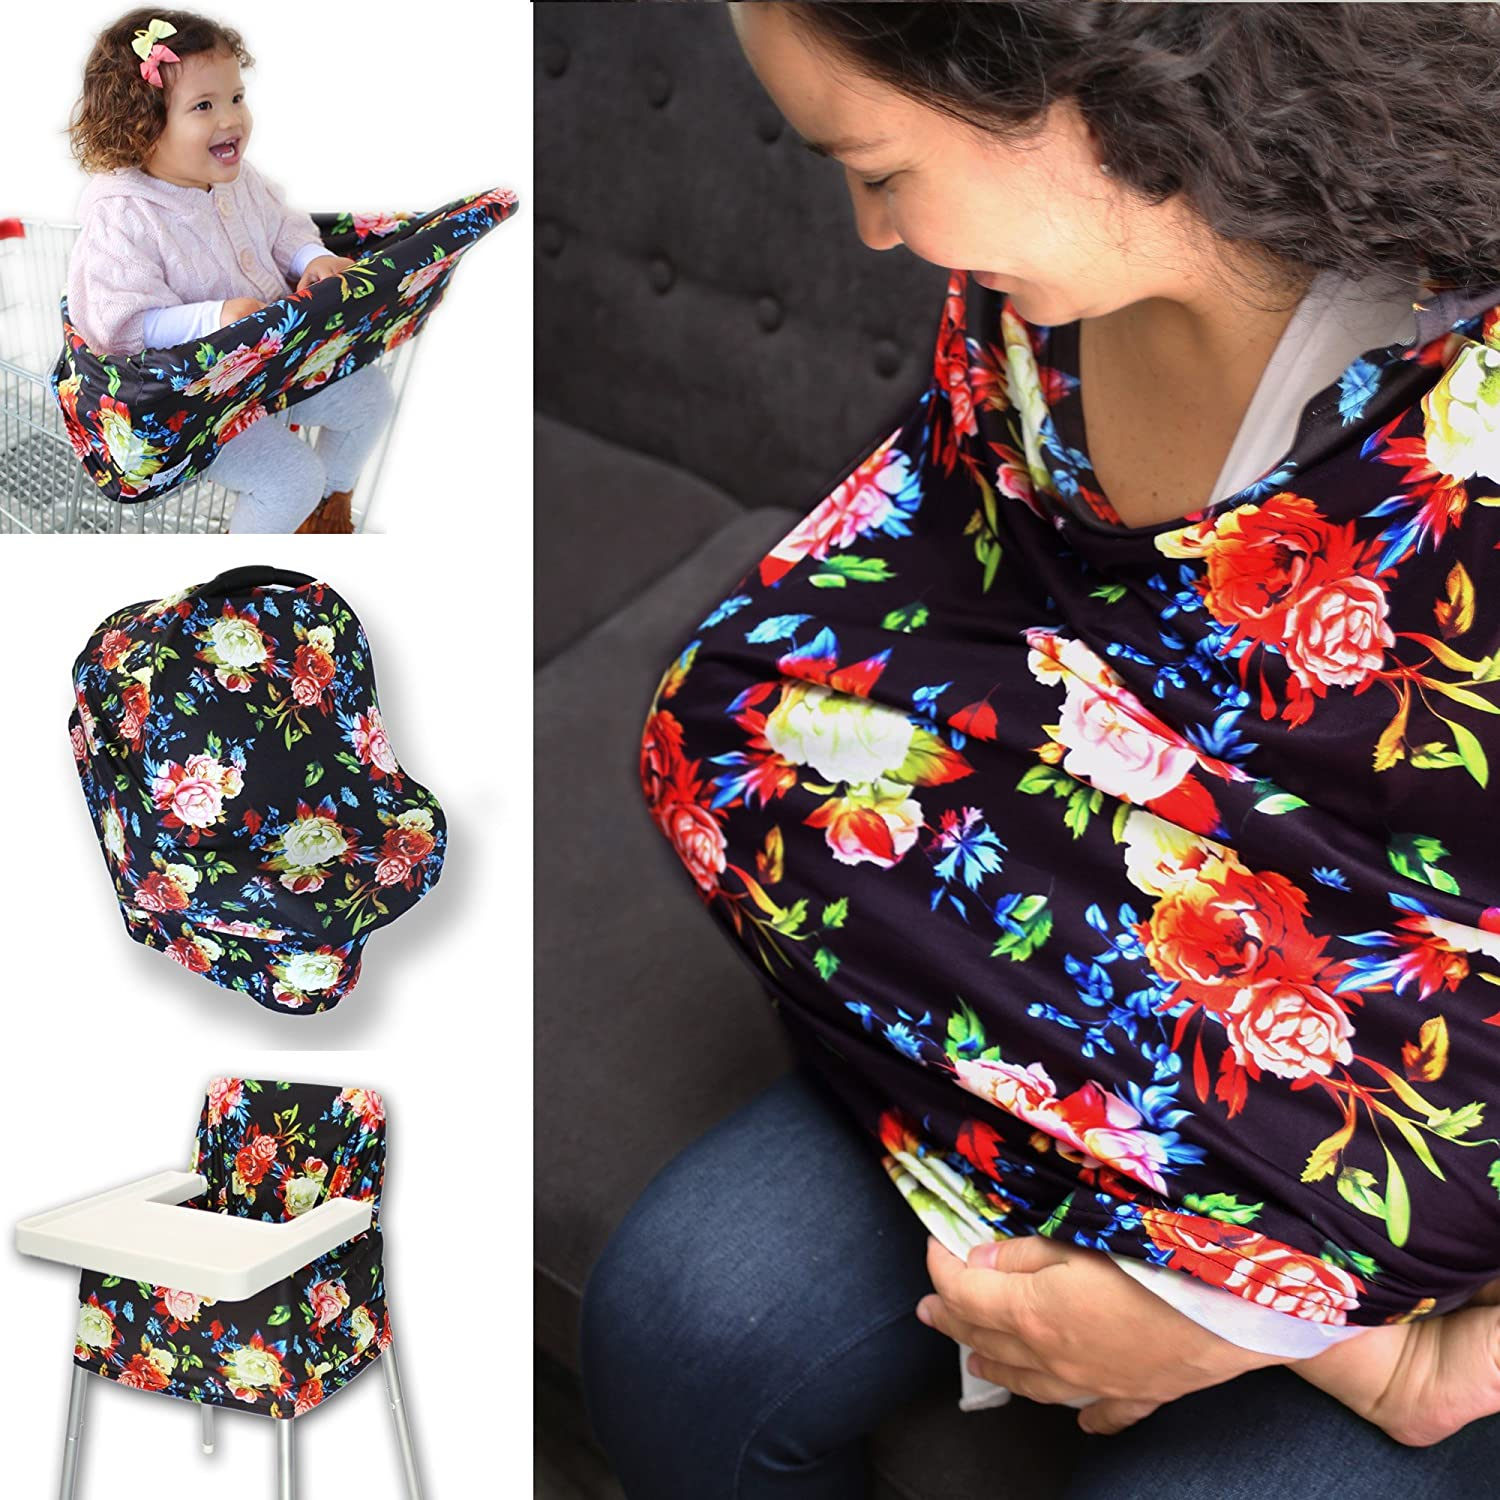 Multi-Use Nursing Super intense SALE Cover and Infinity Weekly update Stretchy Br Cotton Scarf